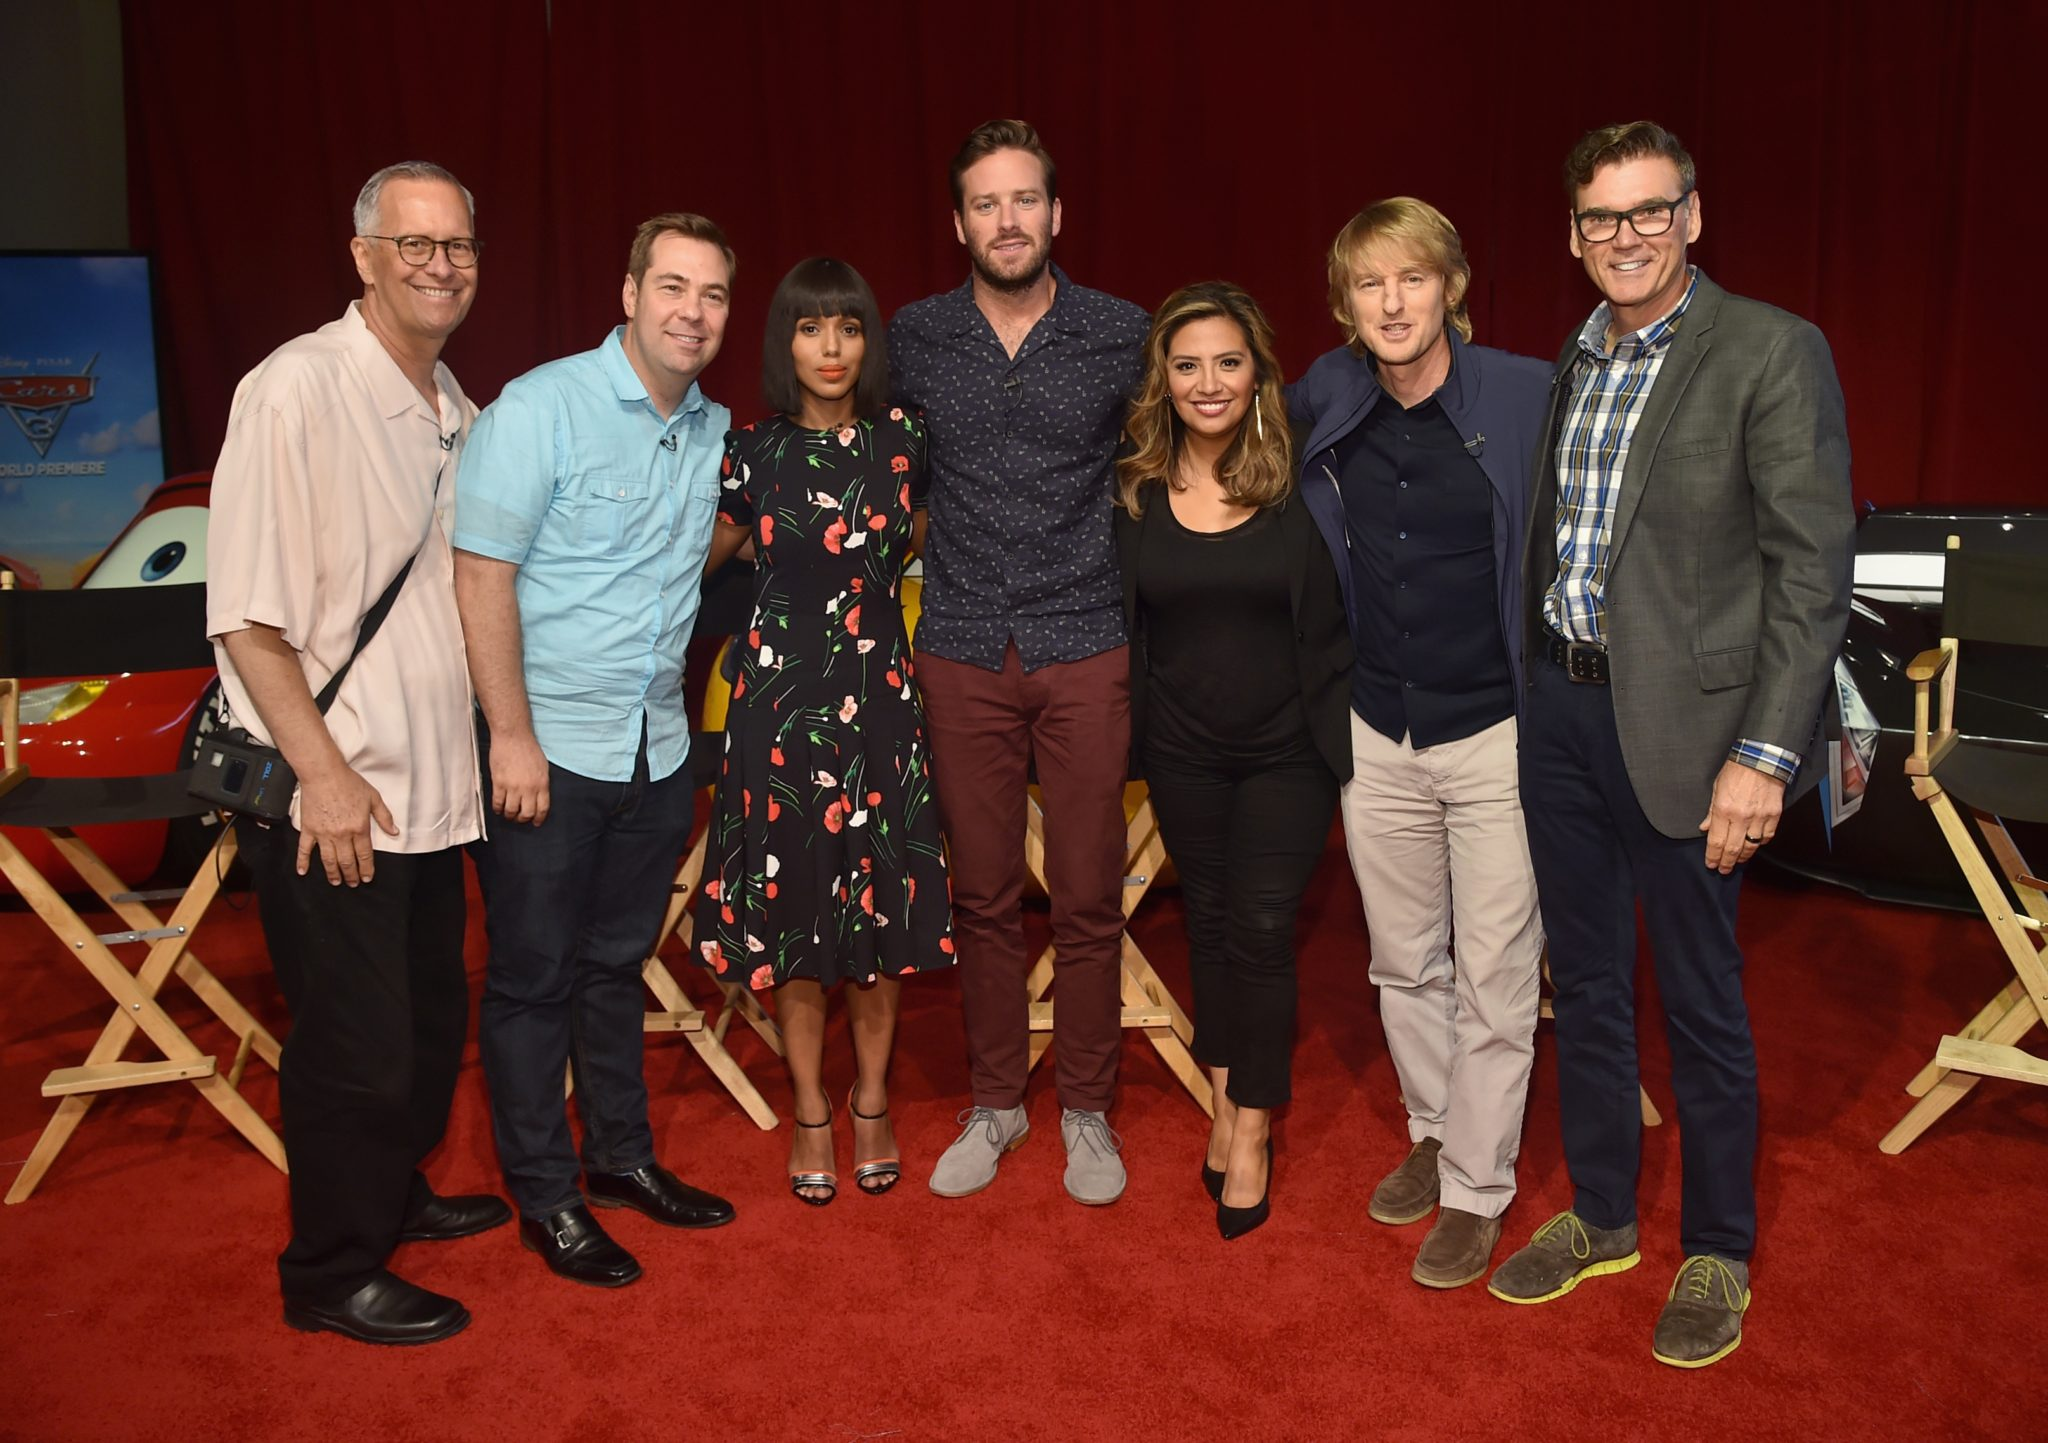 Kevin Reher, Brian Fee, Kerry Washington, Arnie Hammer, Cristela Alonzo, Owen Wilson, Ray Evernham  - Pixar's Cars 3 Press Conference